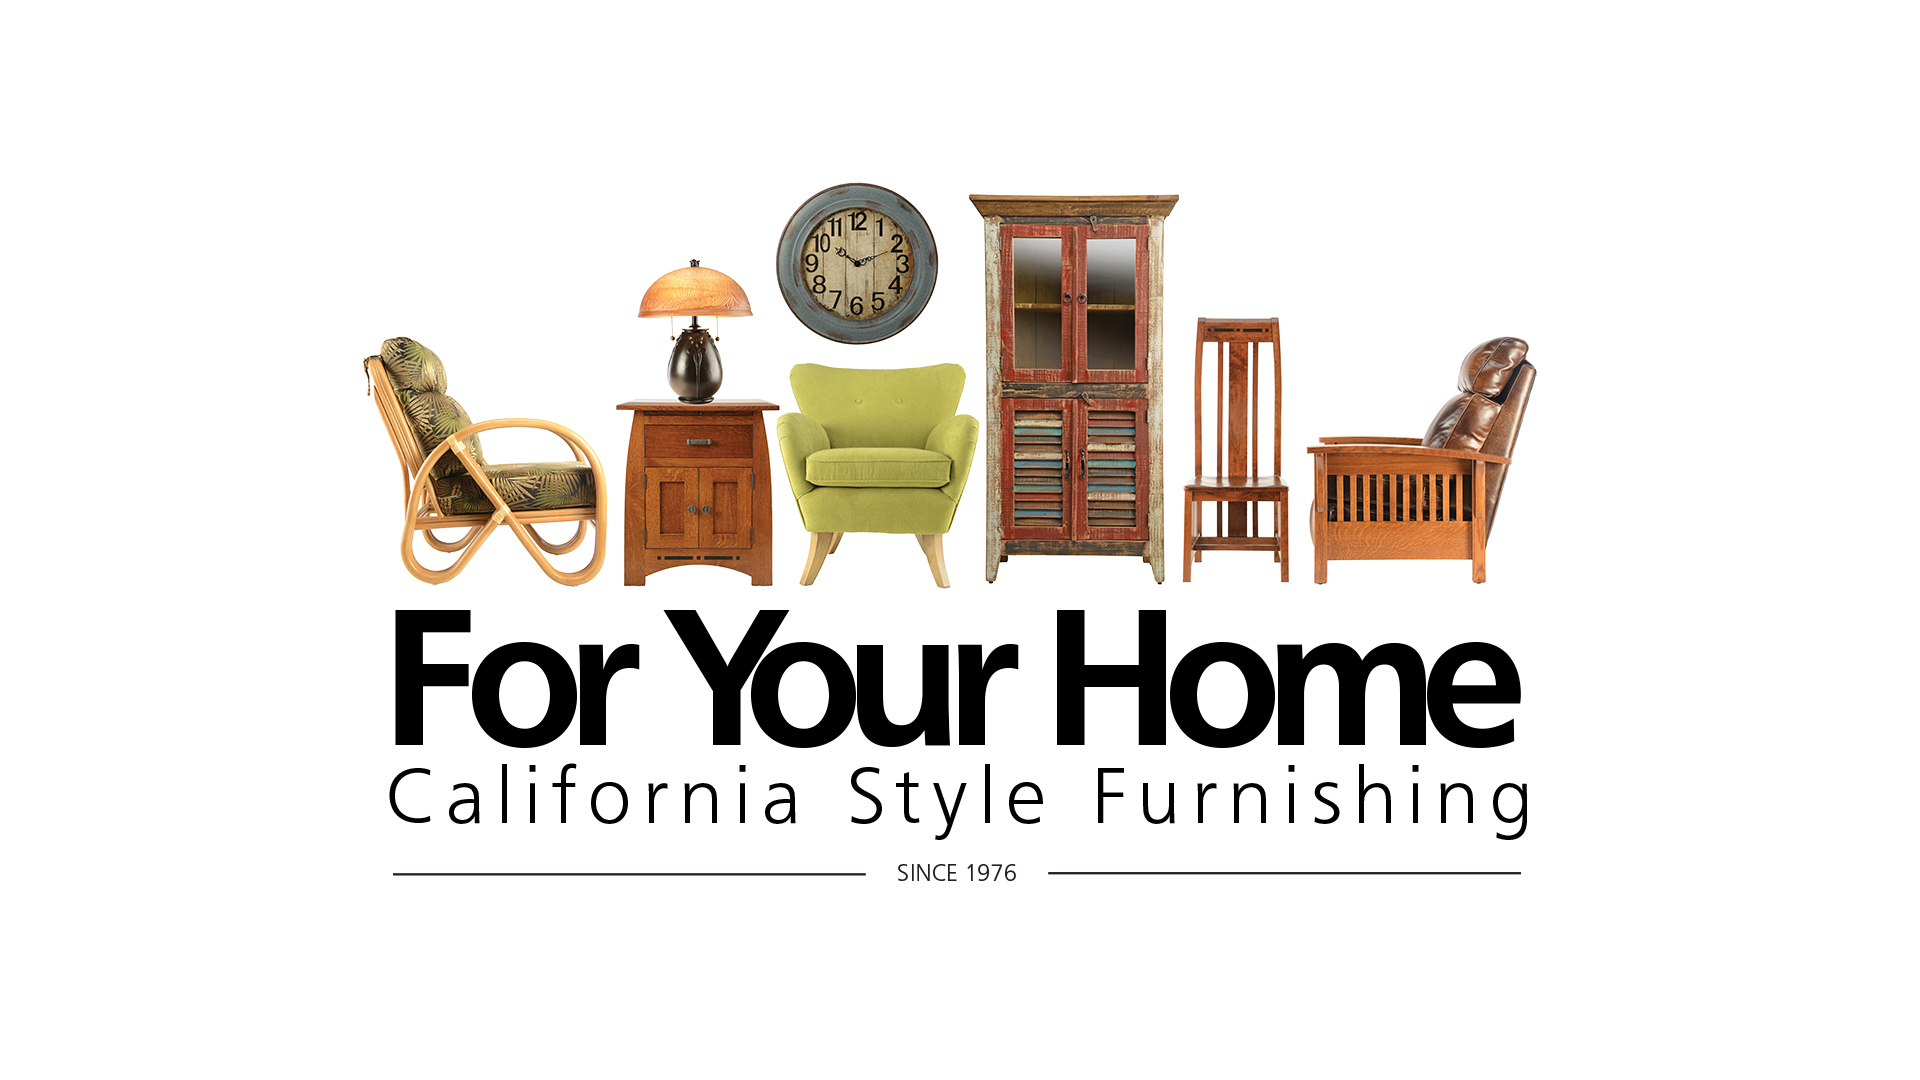 FYH_furniture_logo.jpg